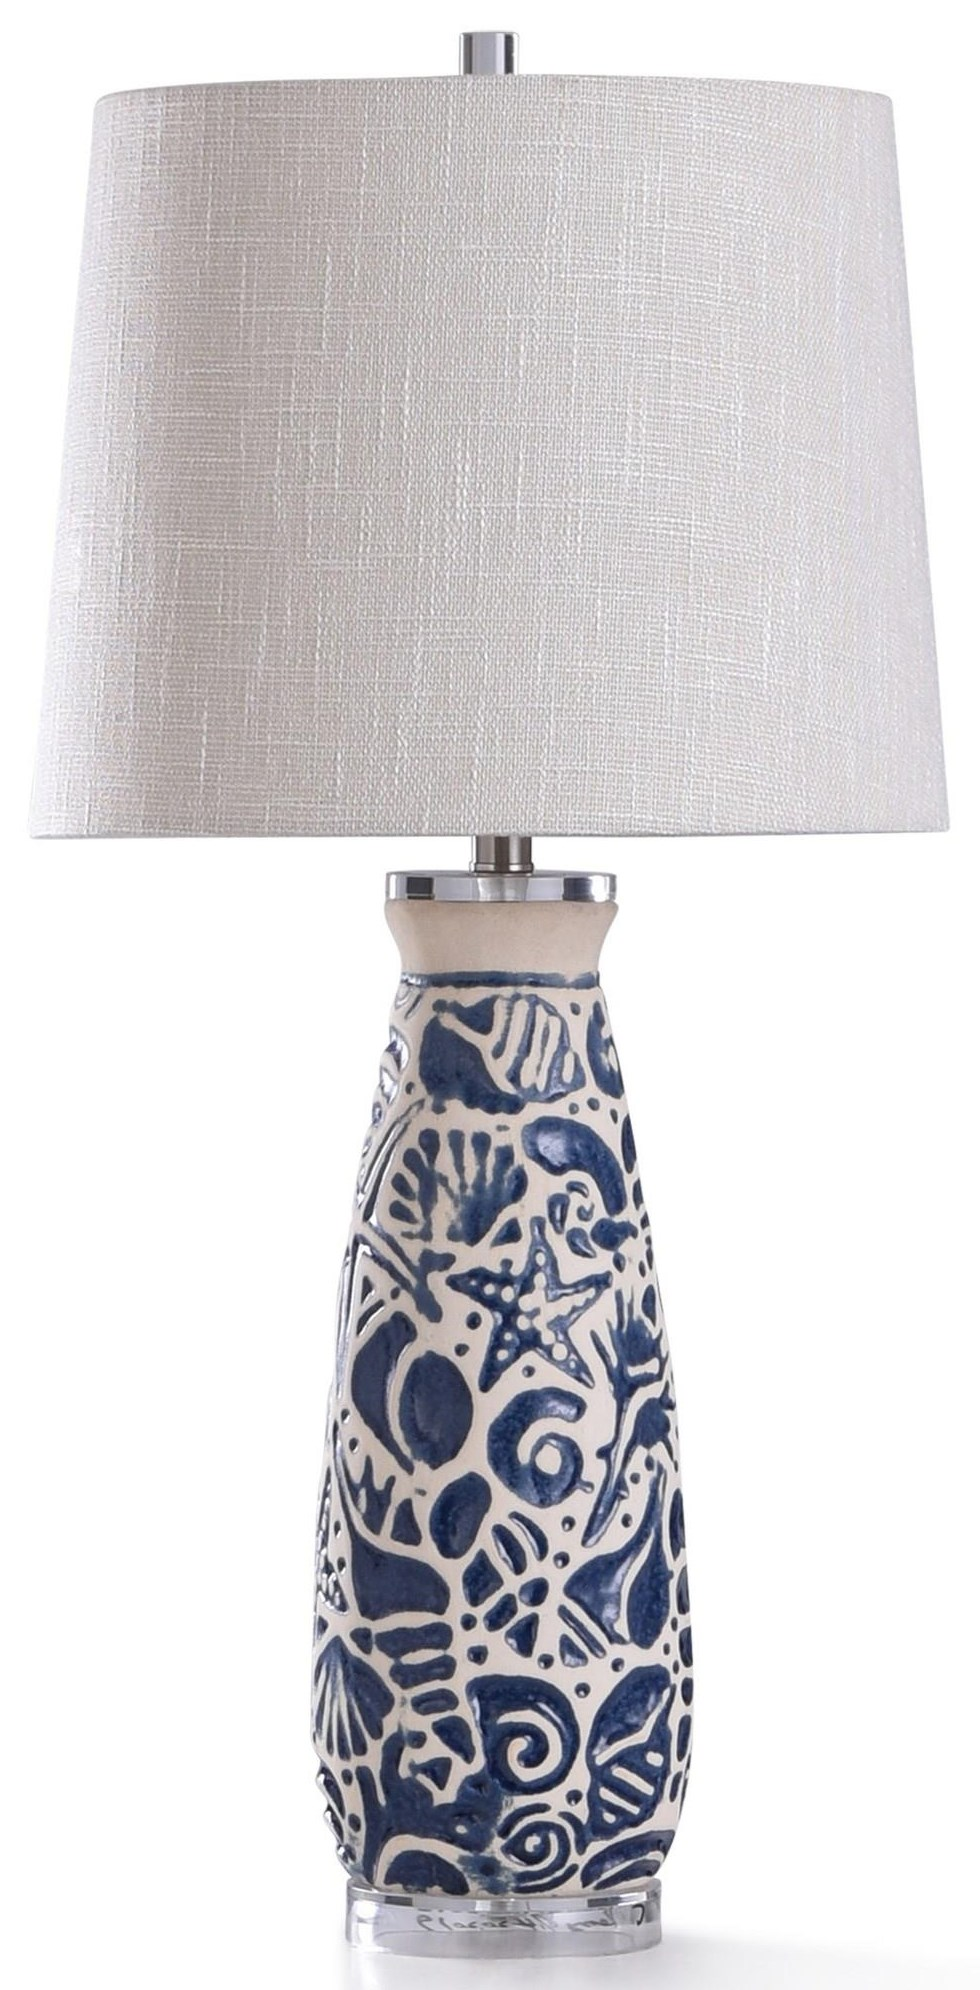 2020 LAMPS Blue Tropical Shell Lamp by StyleCraft at Furniture Fair - North Carolina